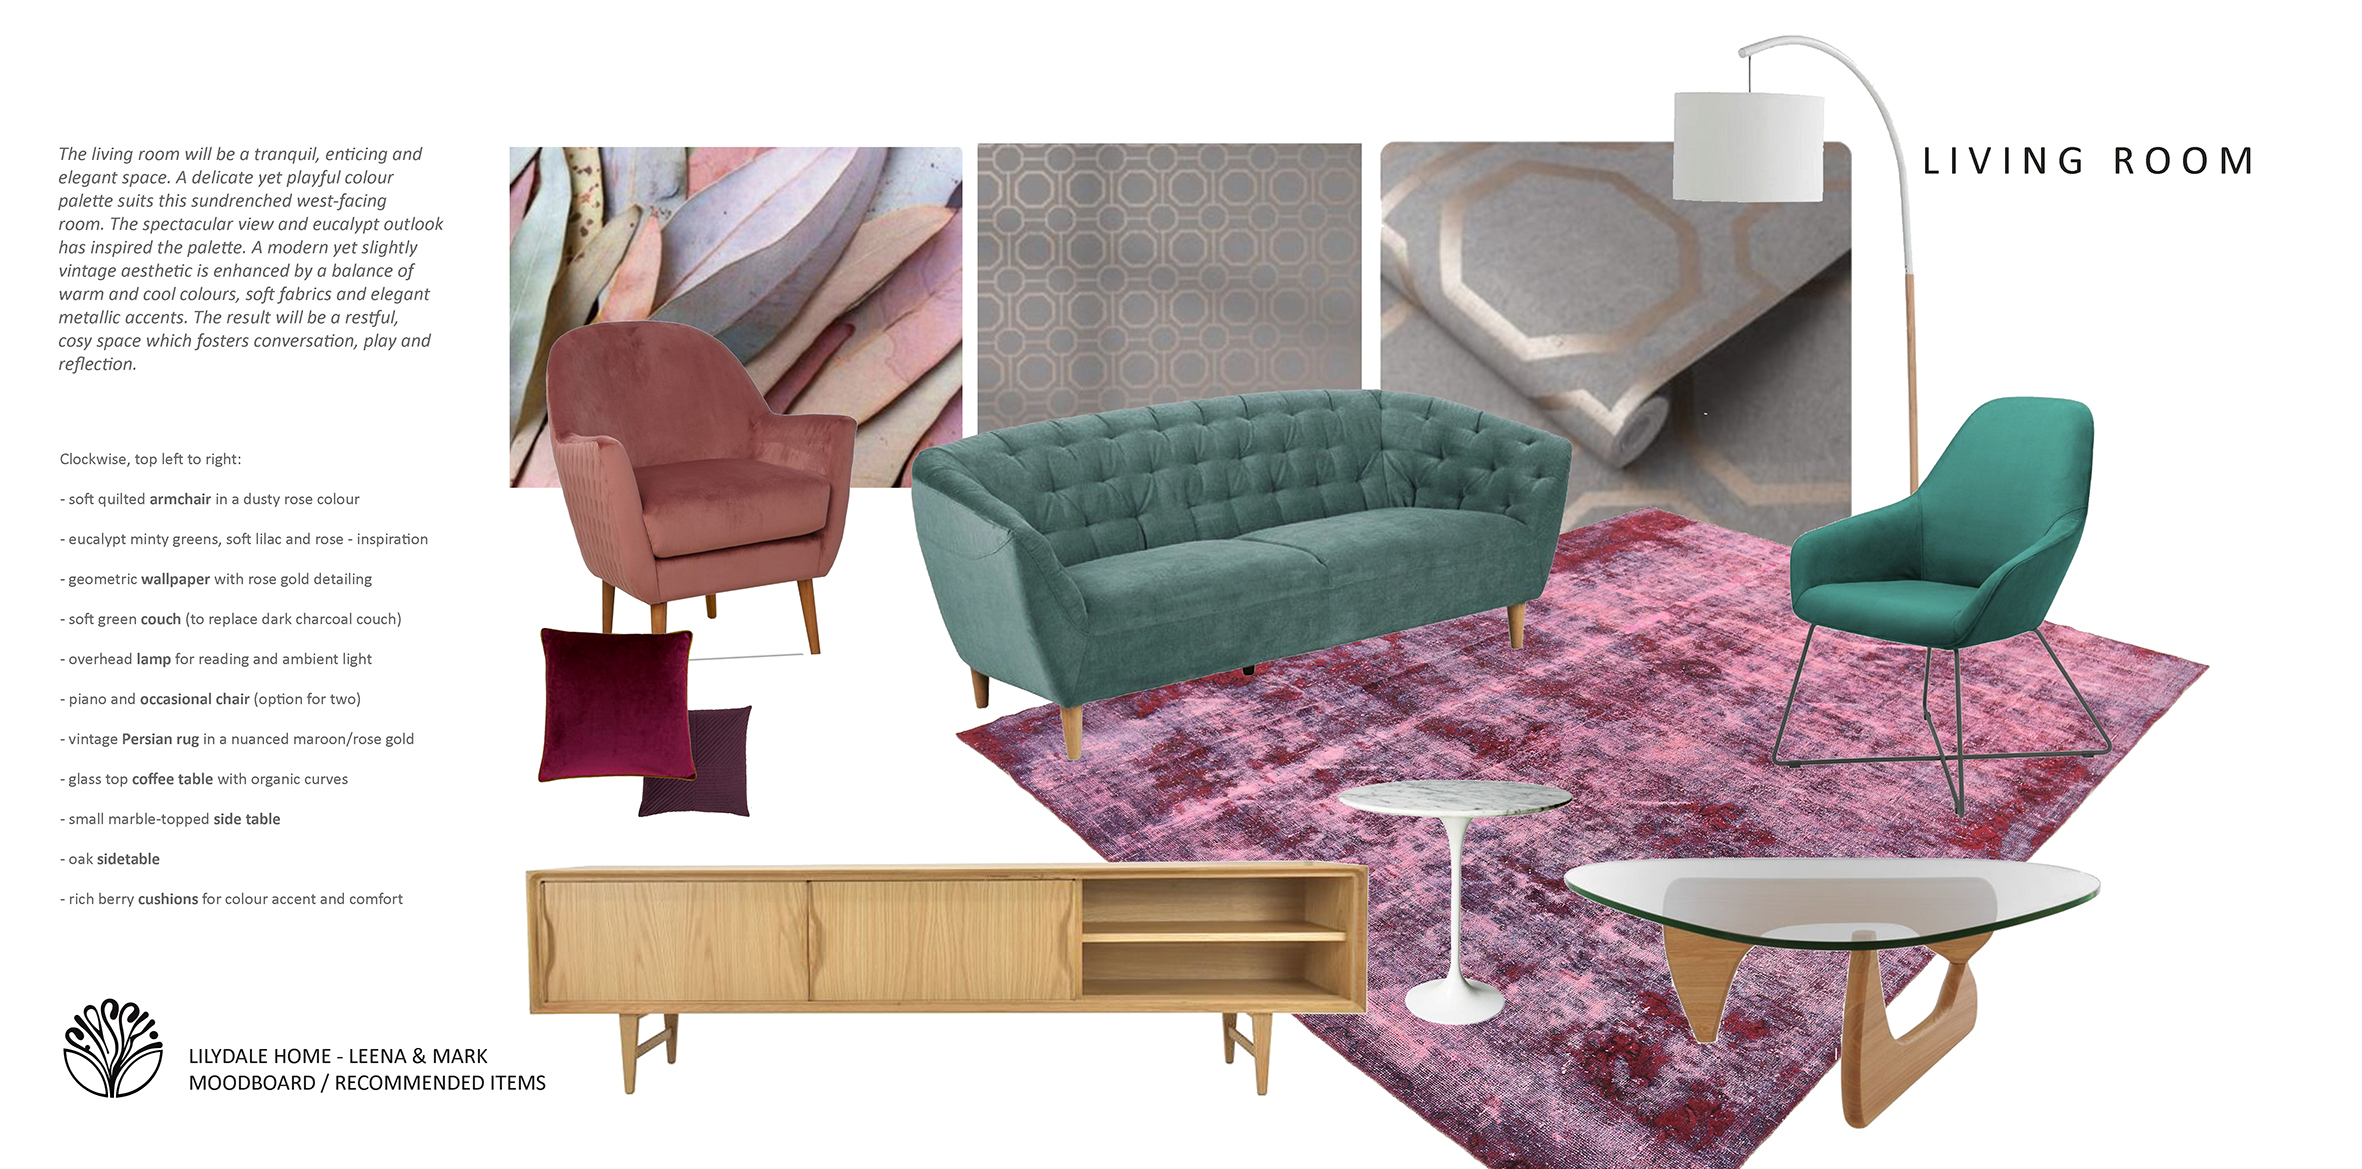 Living room concept - Lilydale